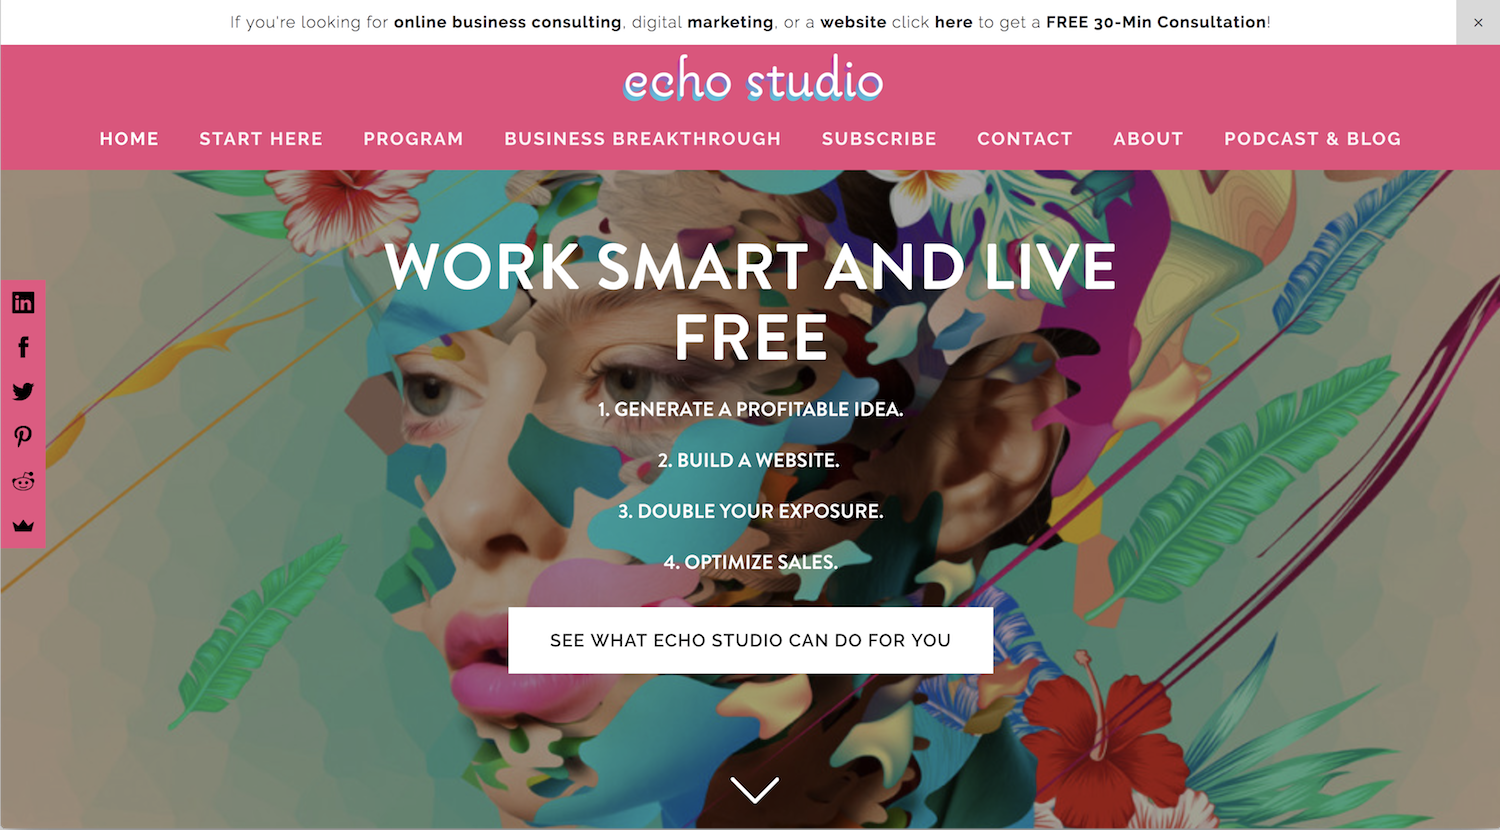 2c8644540dc3 Echo Studio - Esther Chae - 3 Hearts Consulting - Case Study